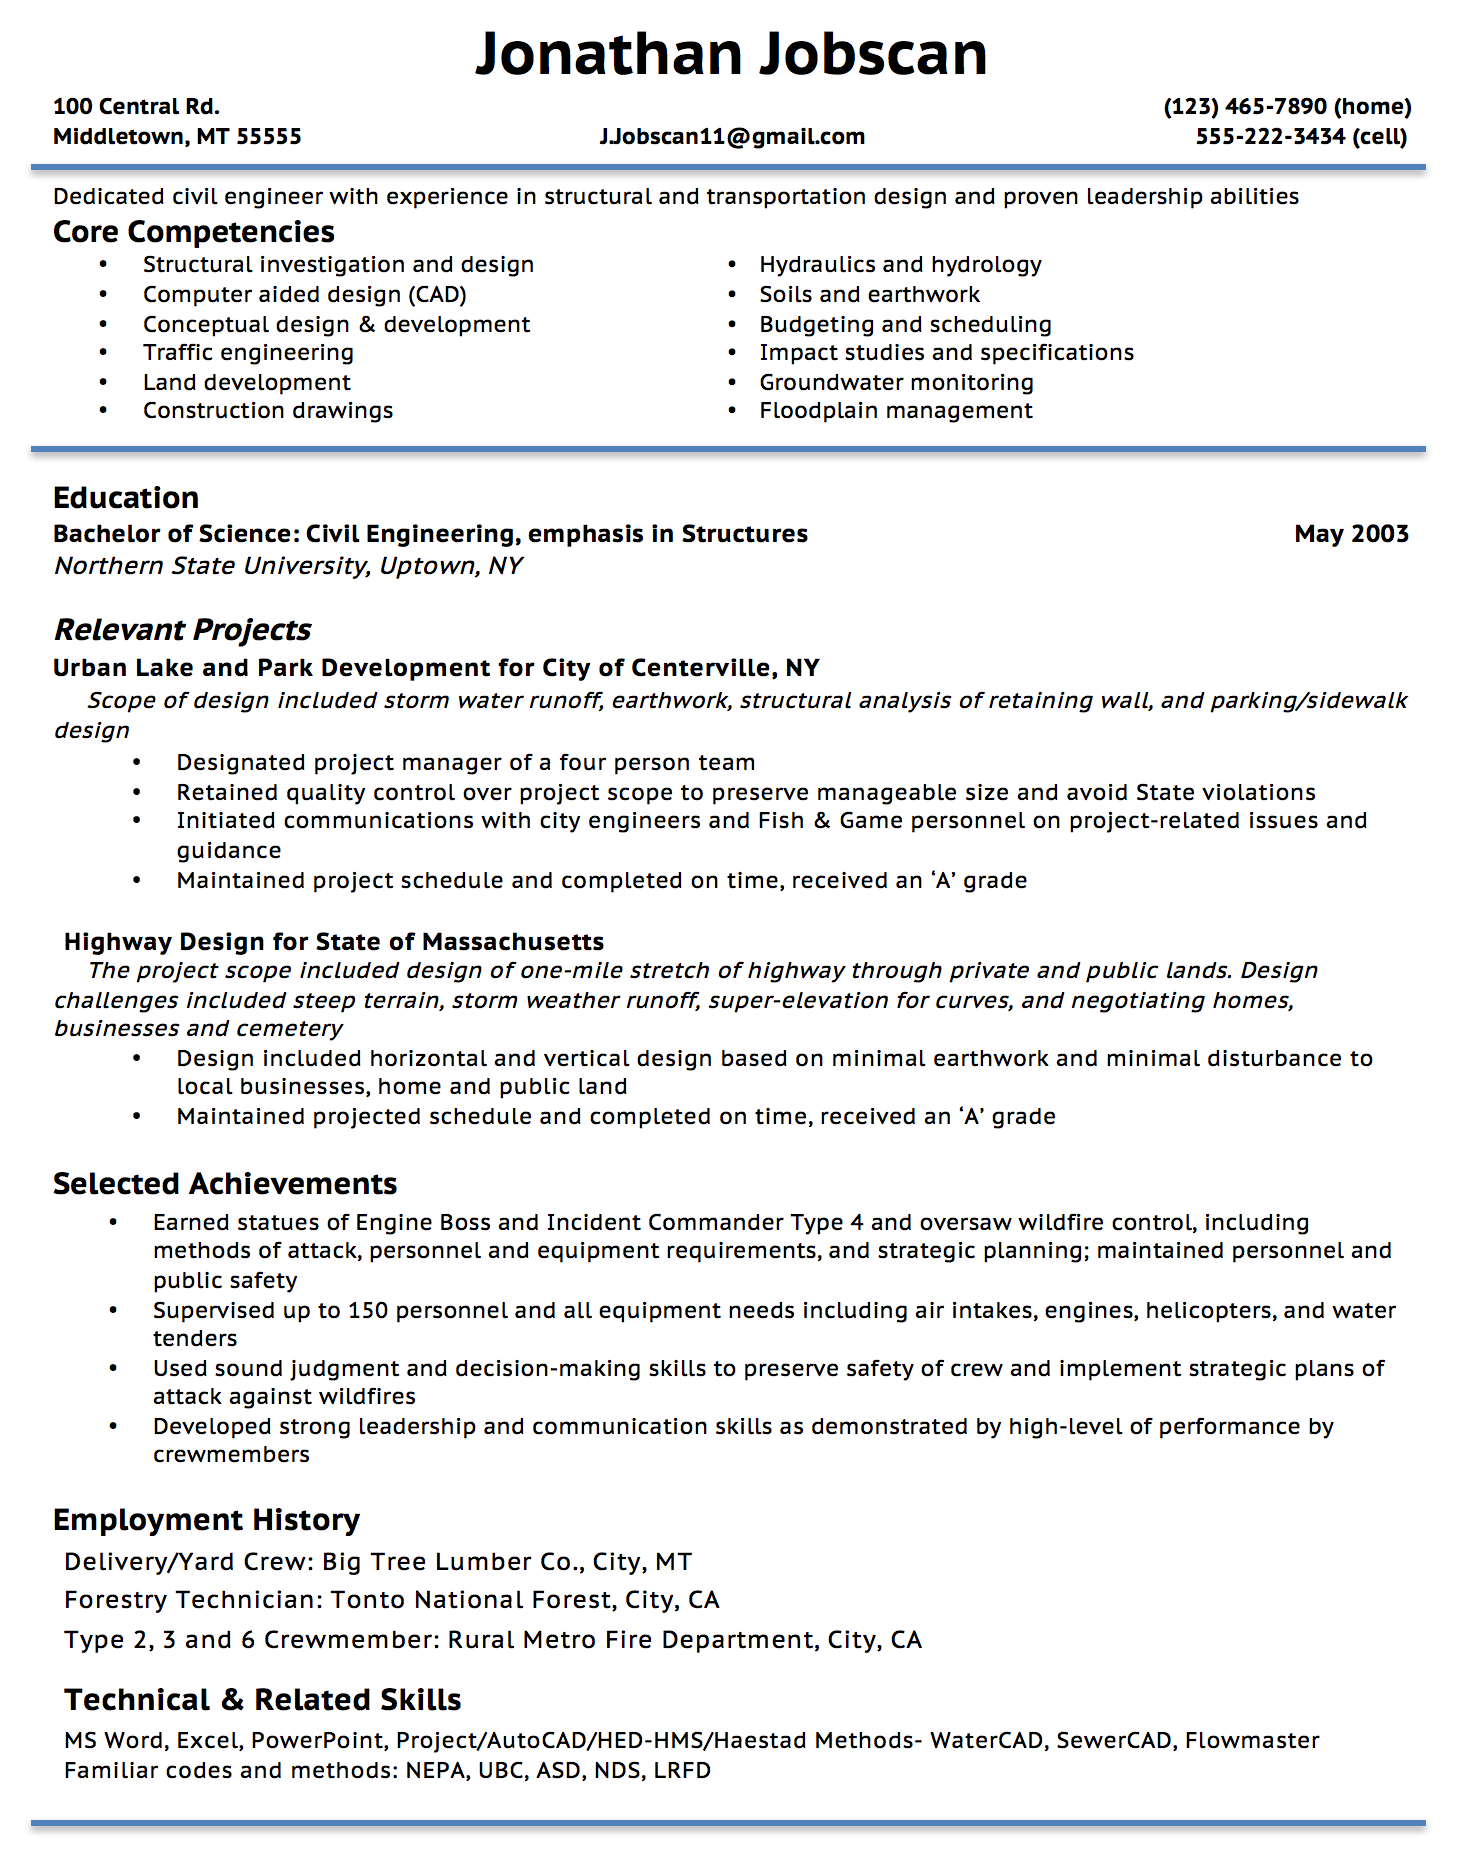 Opposenewapstandardsus  Remarkable Resume Writing Guide  Jobscan With Exquisite Example Of A Functional Resume Format With Alluring Help Desk Analyst Resume Also Student Resume Examples No Experience In Addition What Is Resume Cover Letter And Teller Job Description For Resume As Well As What Is A Federal Resume Additionally Cio Resume Sample From Jobscanco With Opposenewapstandardsus  Exquisite Resume Writing Guide  Jobscan With Alluring Example Of A Functional Resume Format And Remarkable Help Desk Analyst Resume Also Student Resume Examples No Experience In Addition What Is Resume Cover Letter From Jobscanco